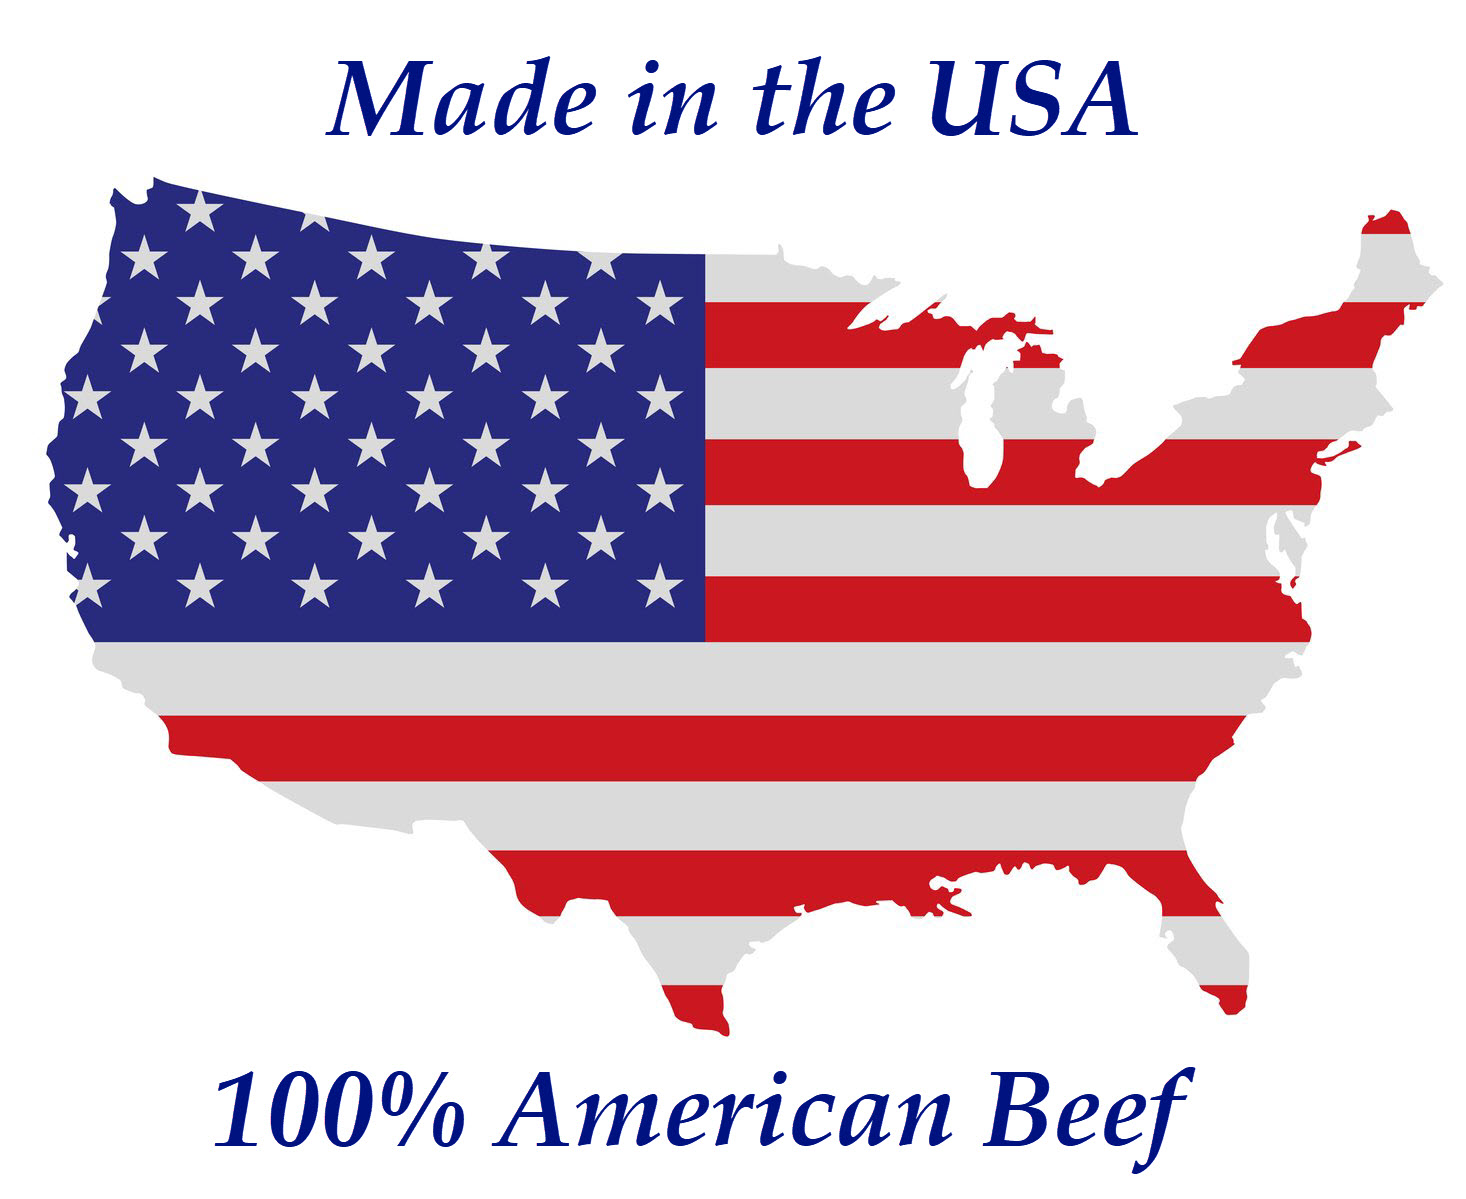 Brasstown Beef - Made in the USA